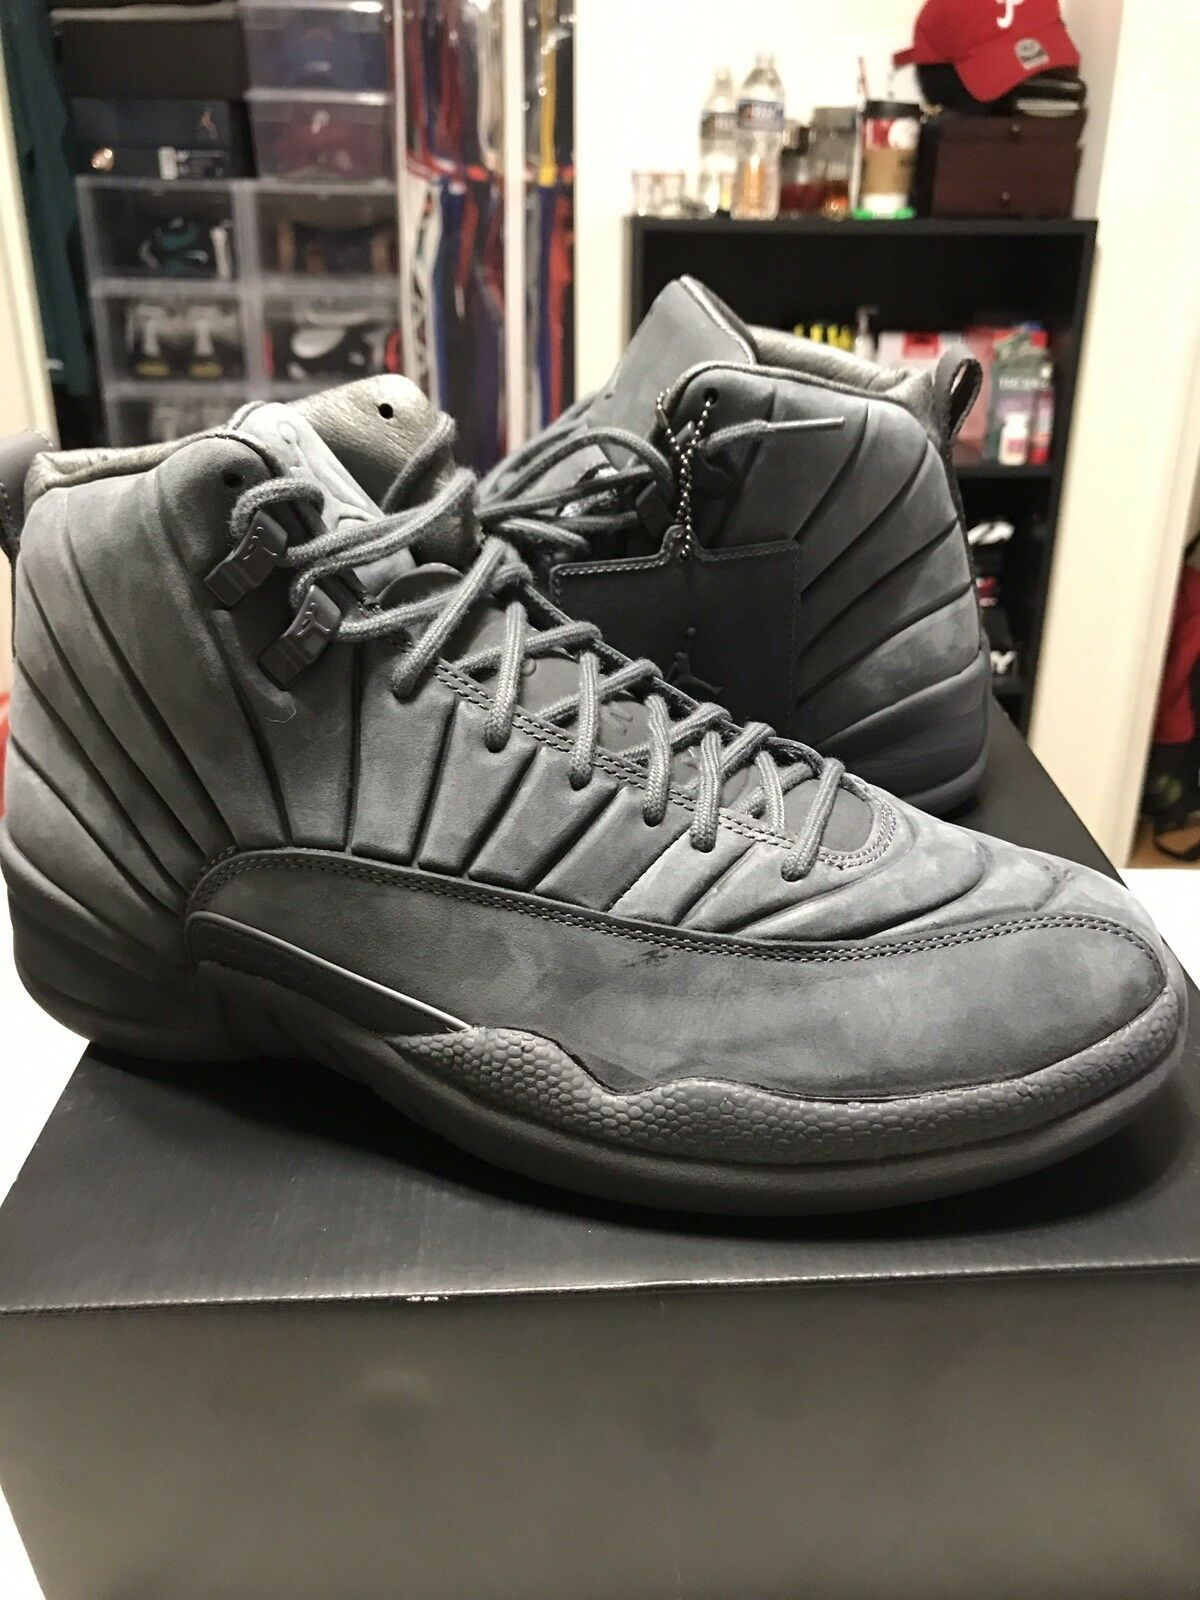 NIKE AIR JORDAN 12 GREY PSNY SZ 10.5